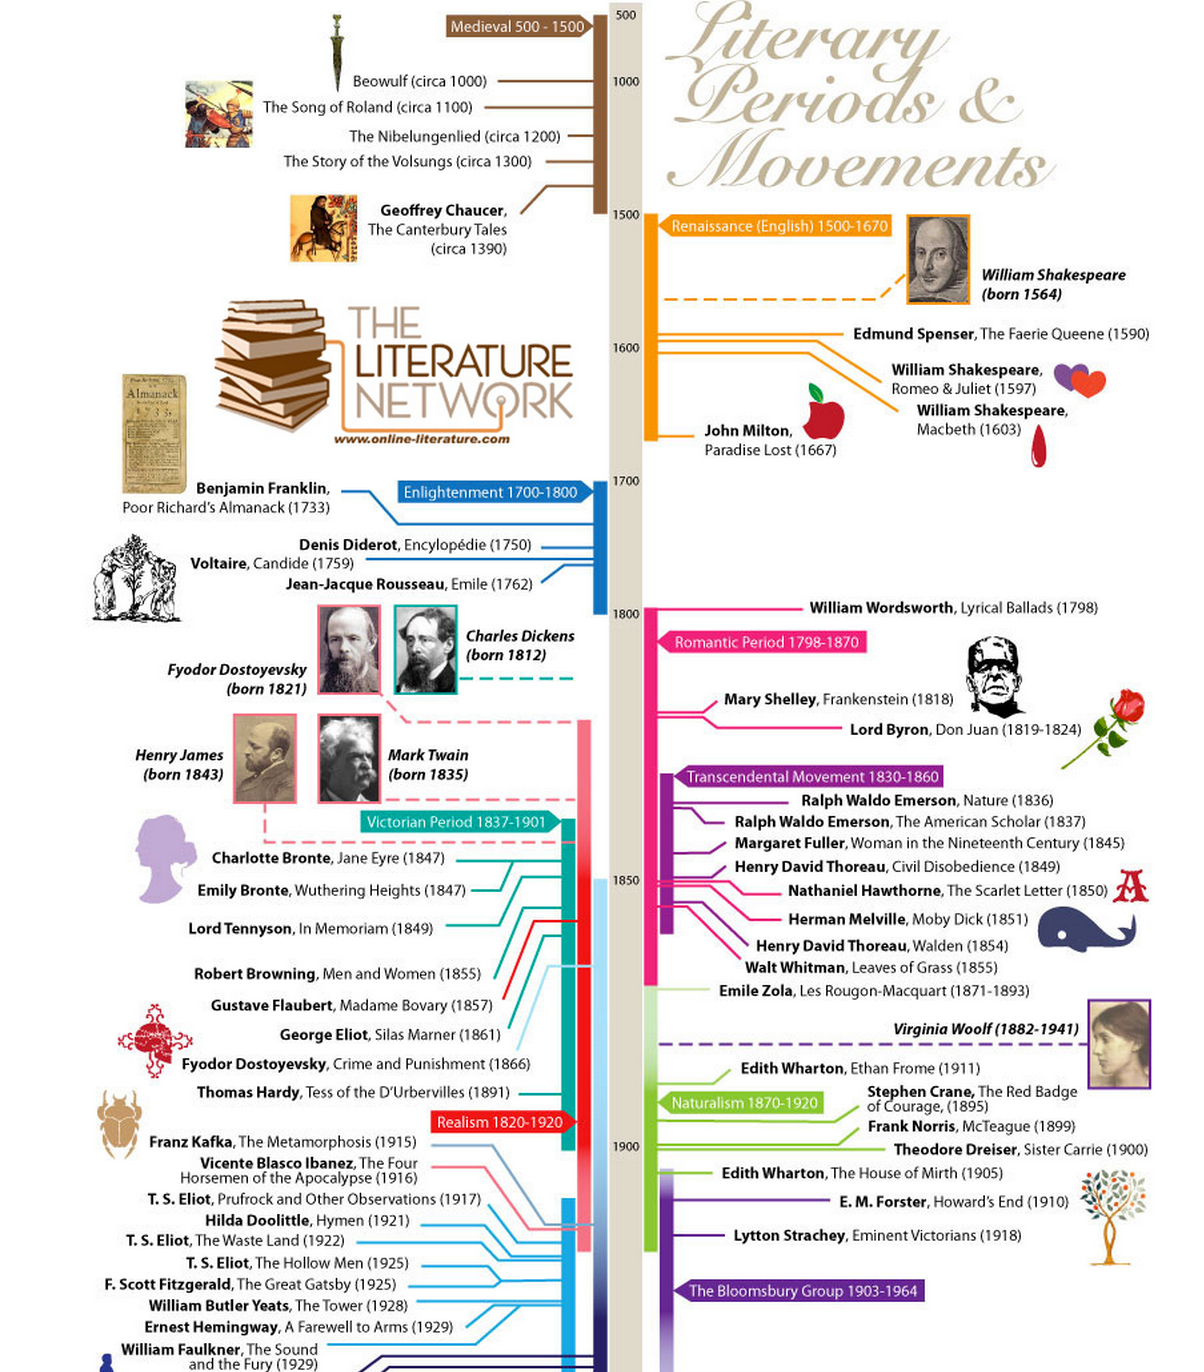 A Great Visual Timeline Chronicling The Major Literary